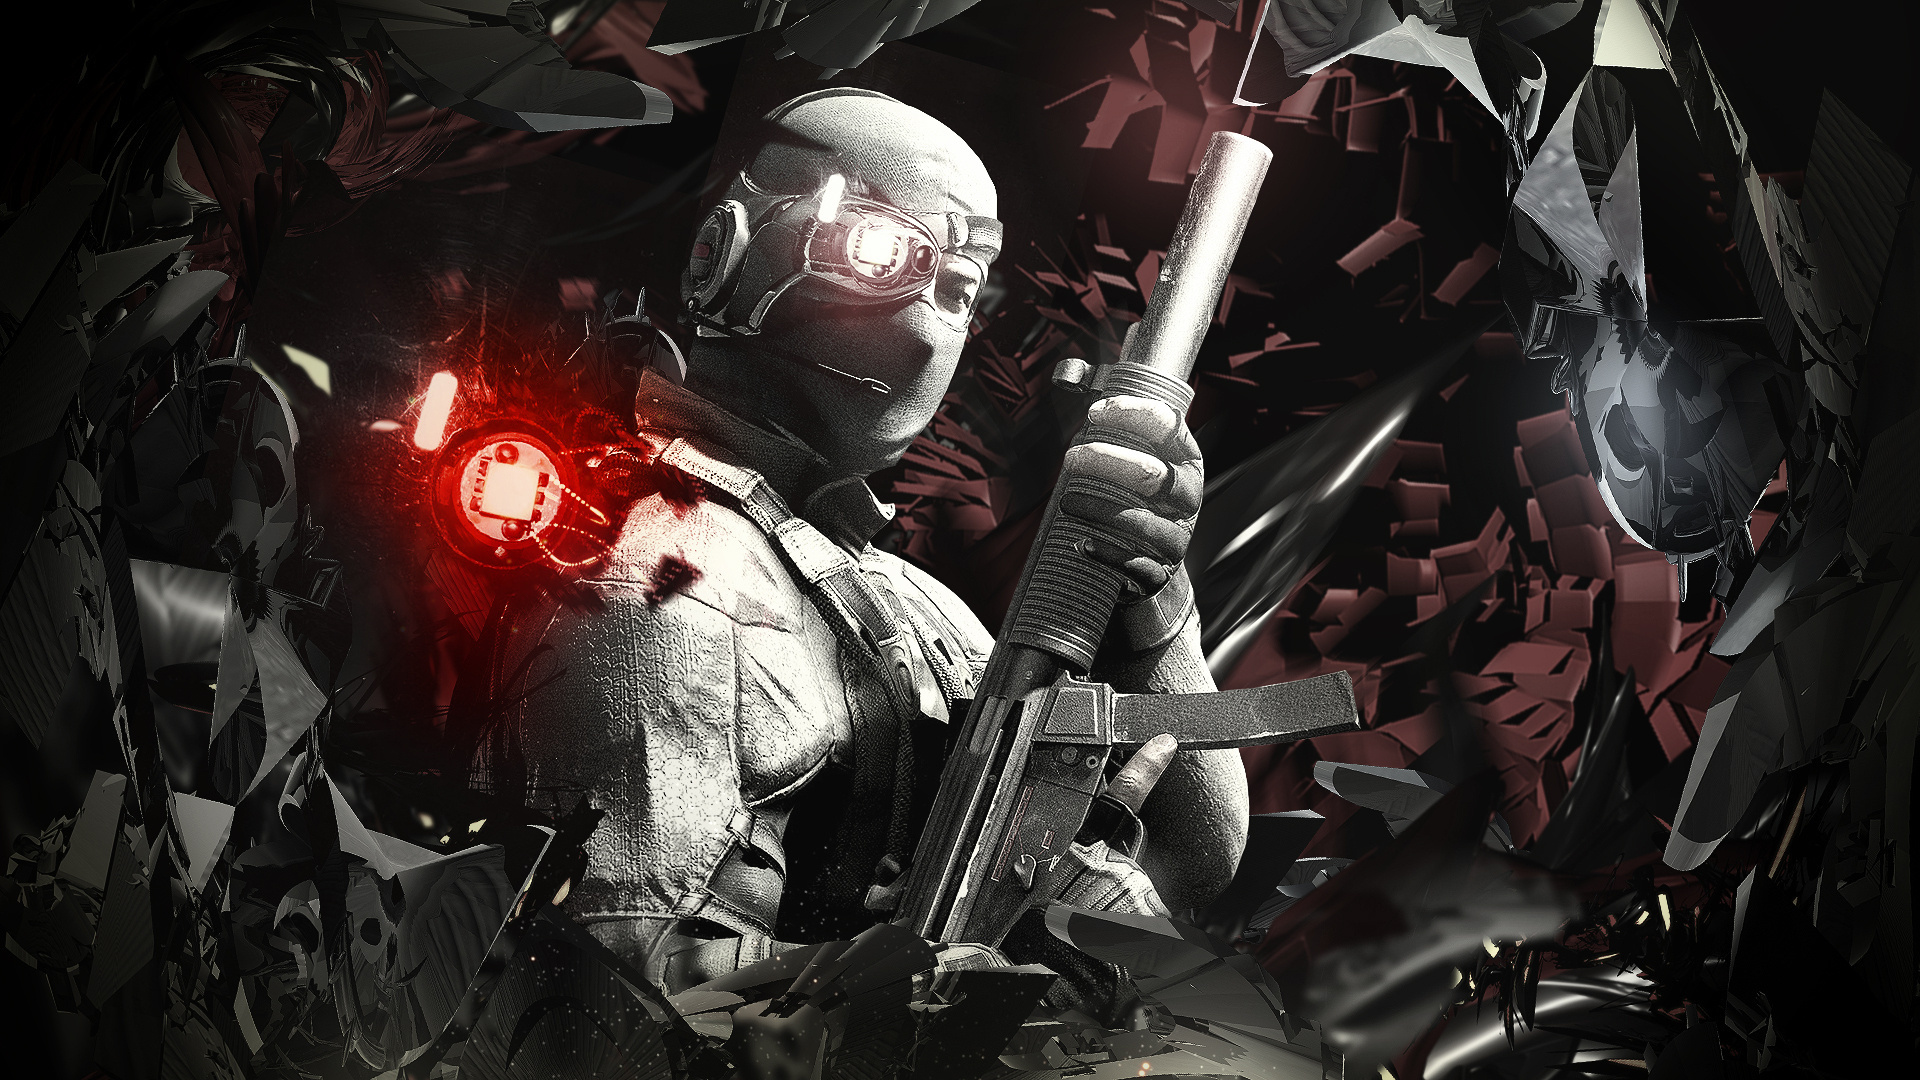 splinter cell blacklist wallpaper A3